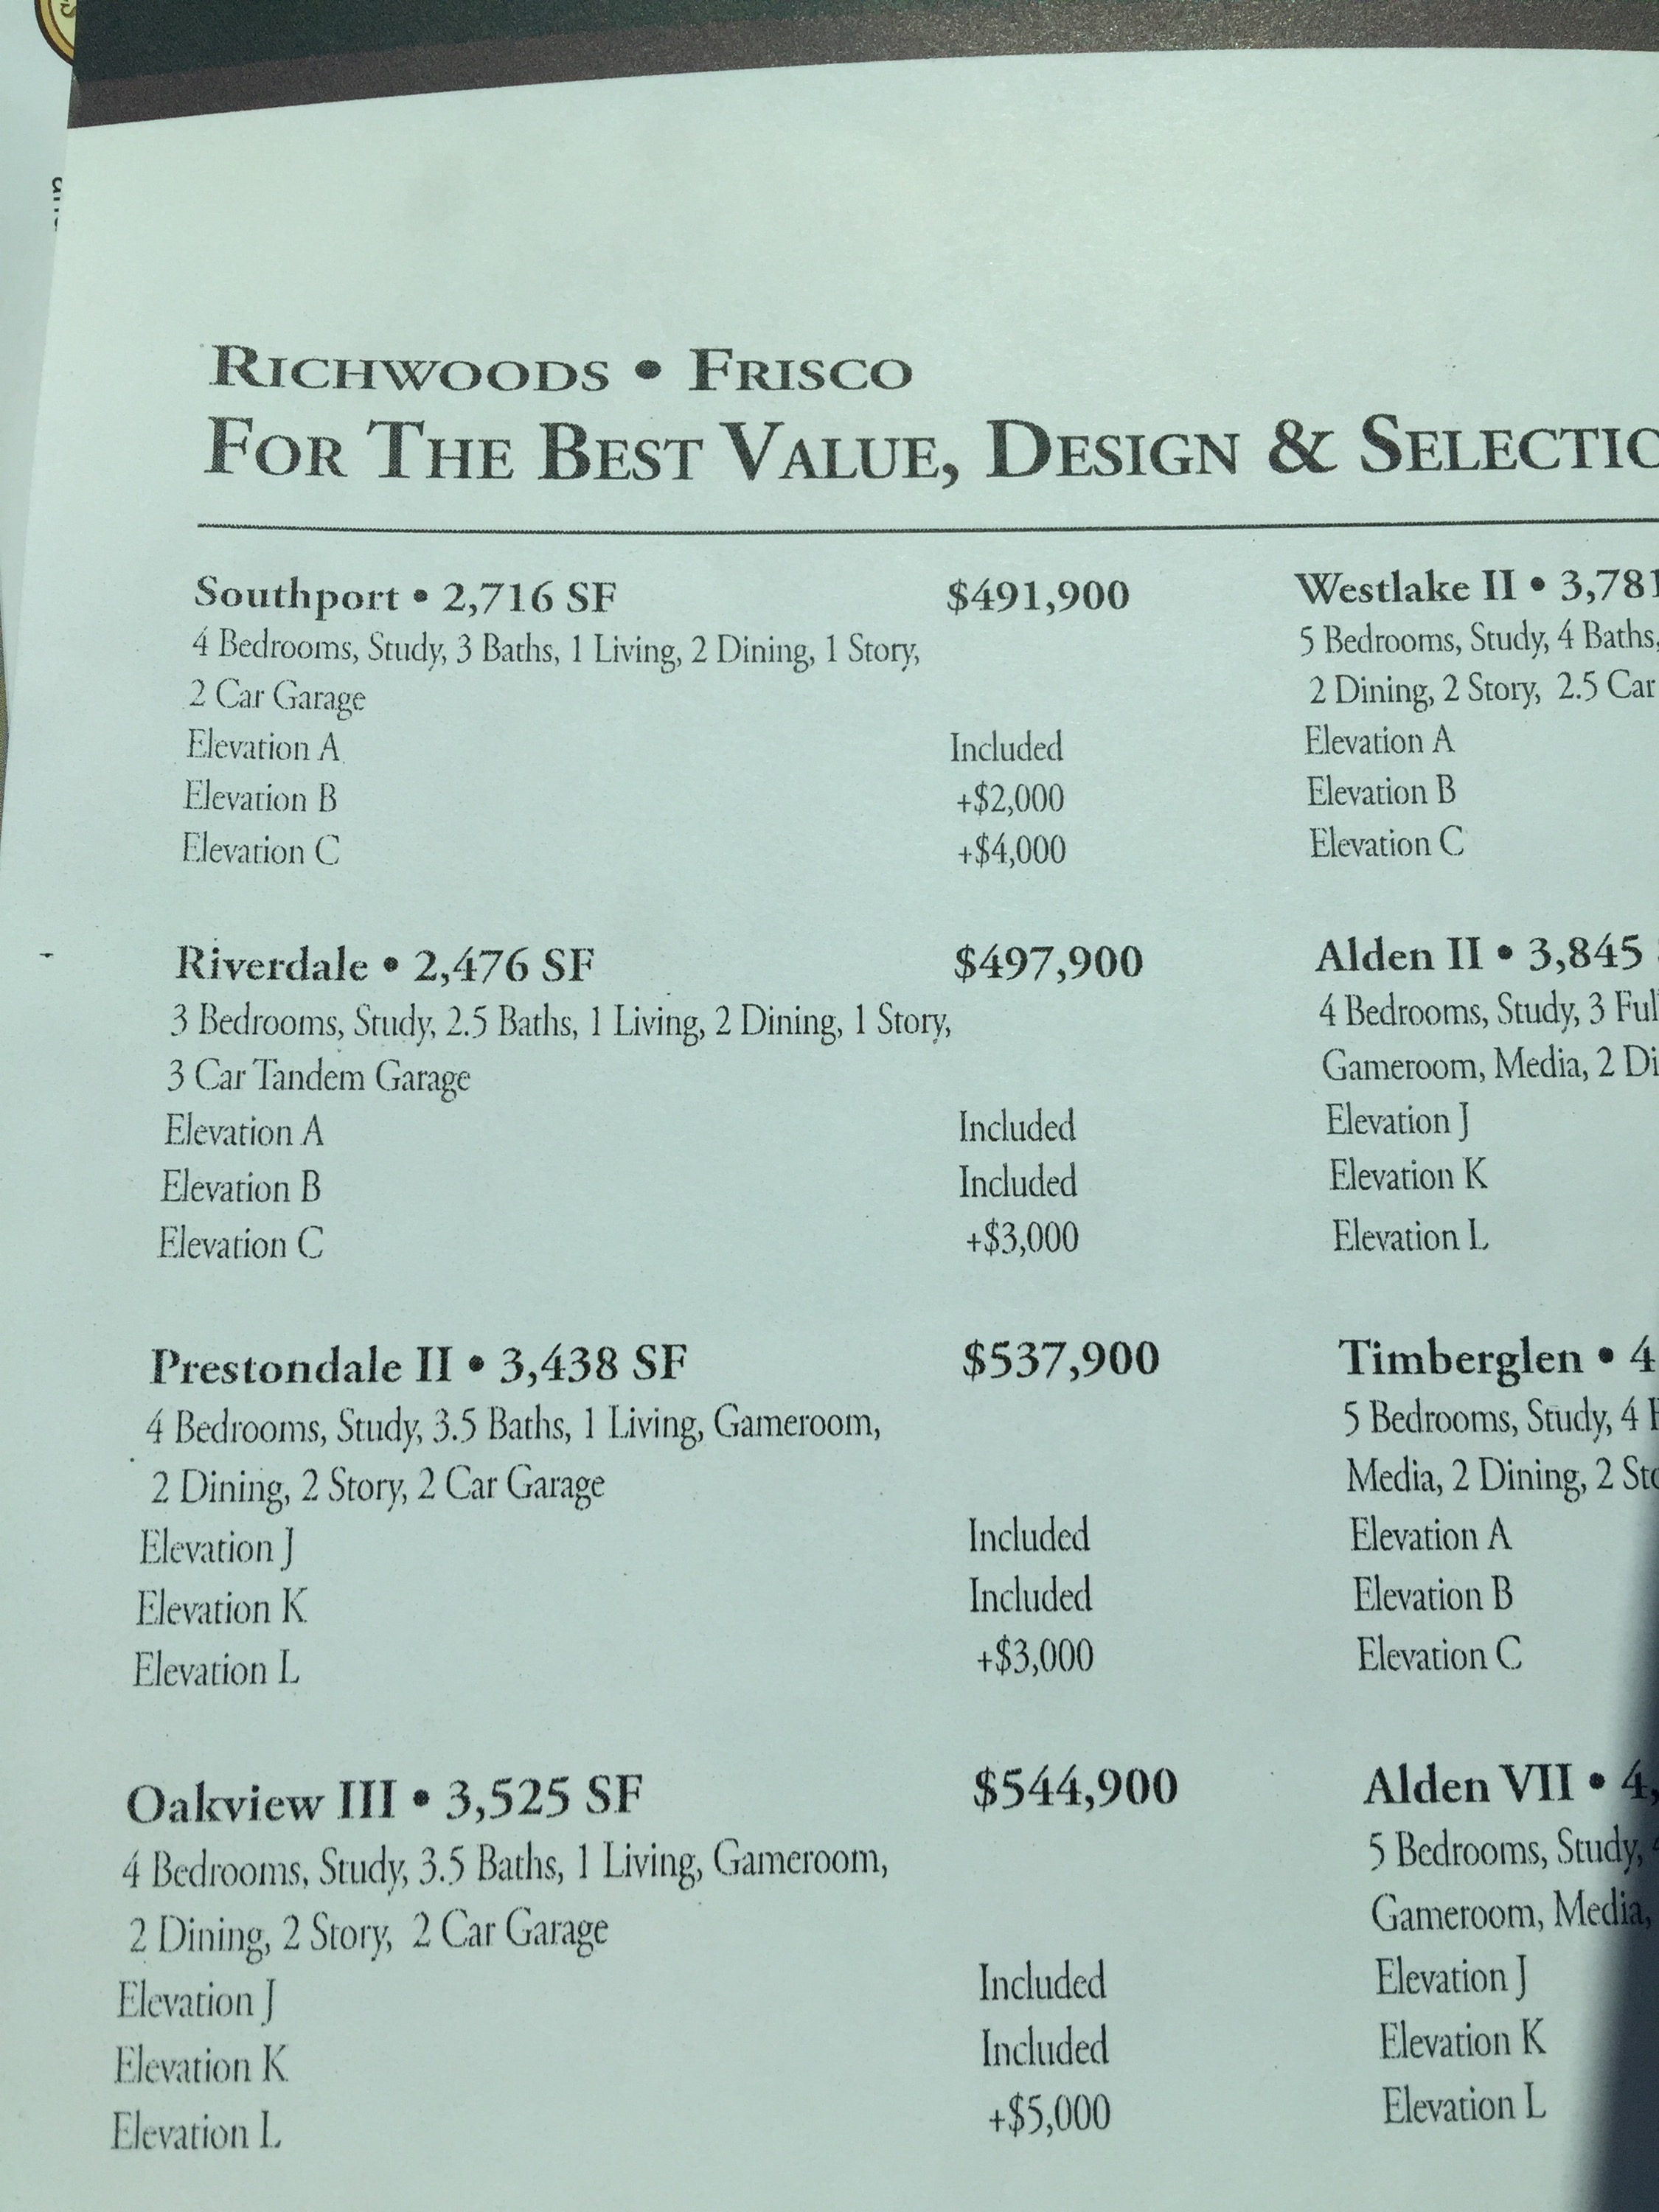 K hovnanian richwoods update frisco richwoods for New home price list